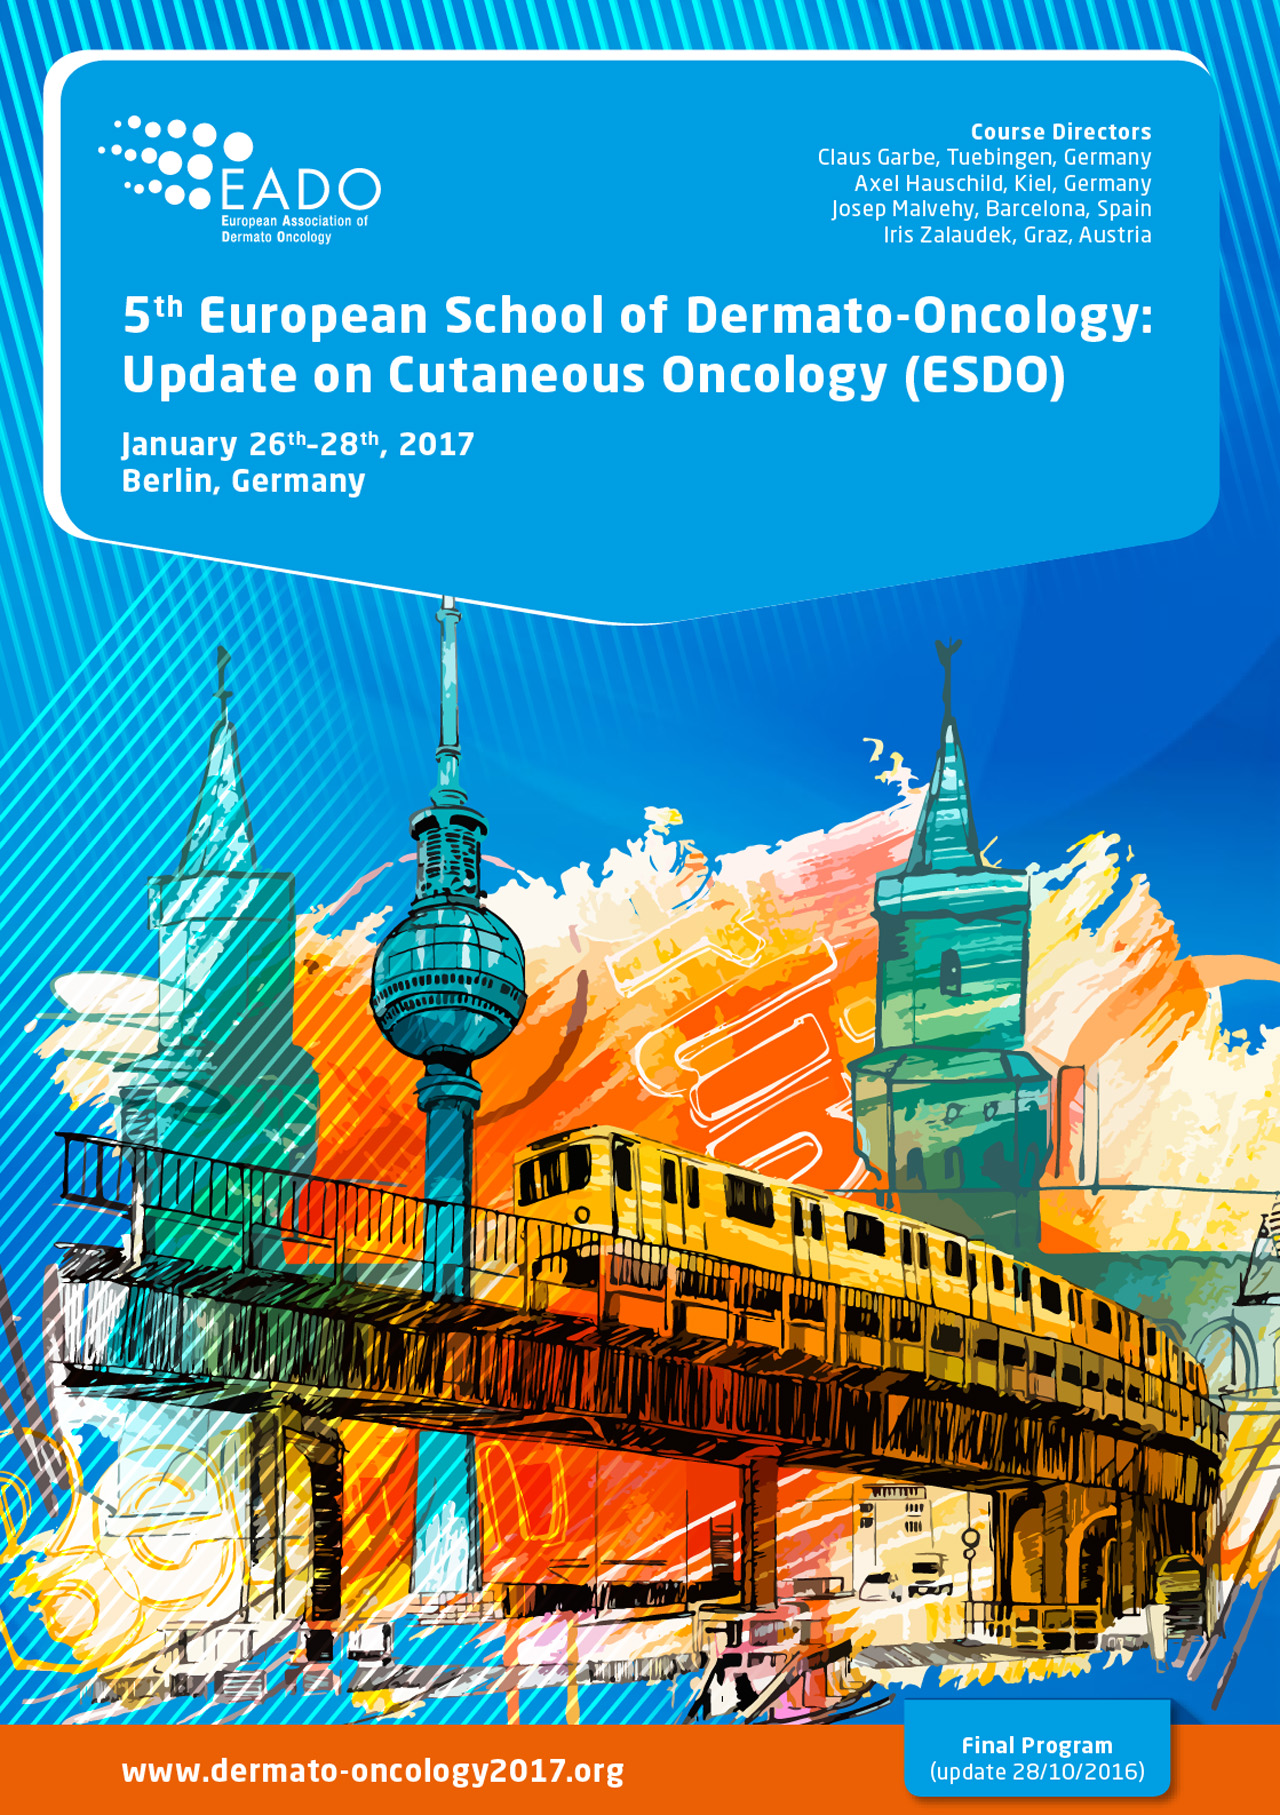 5th European School of Dermato-Oncology: Update on Cutaneous Oncology (ESDO)